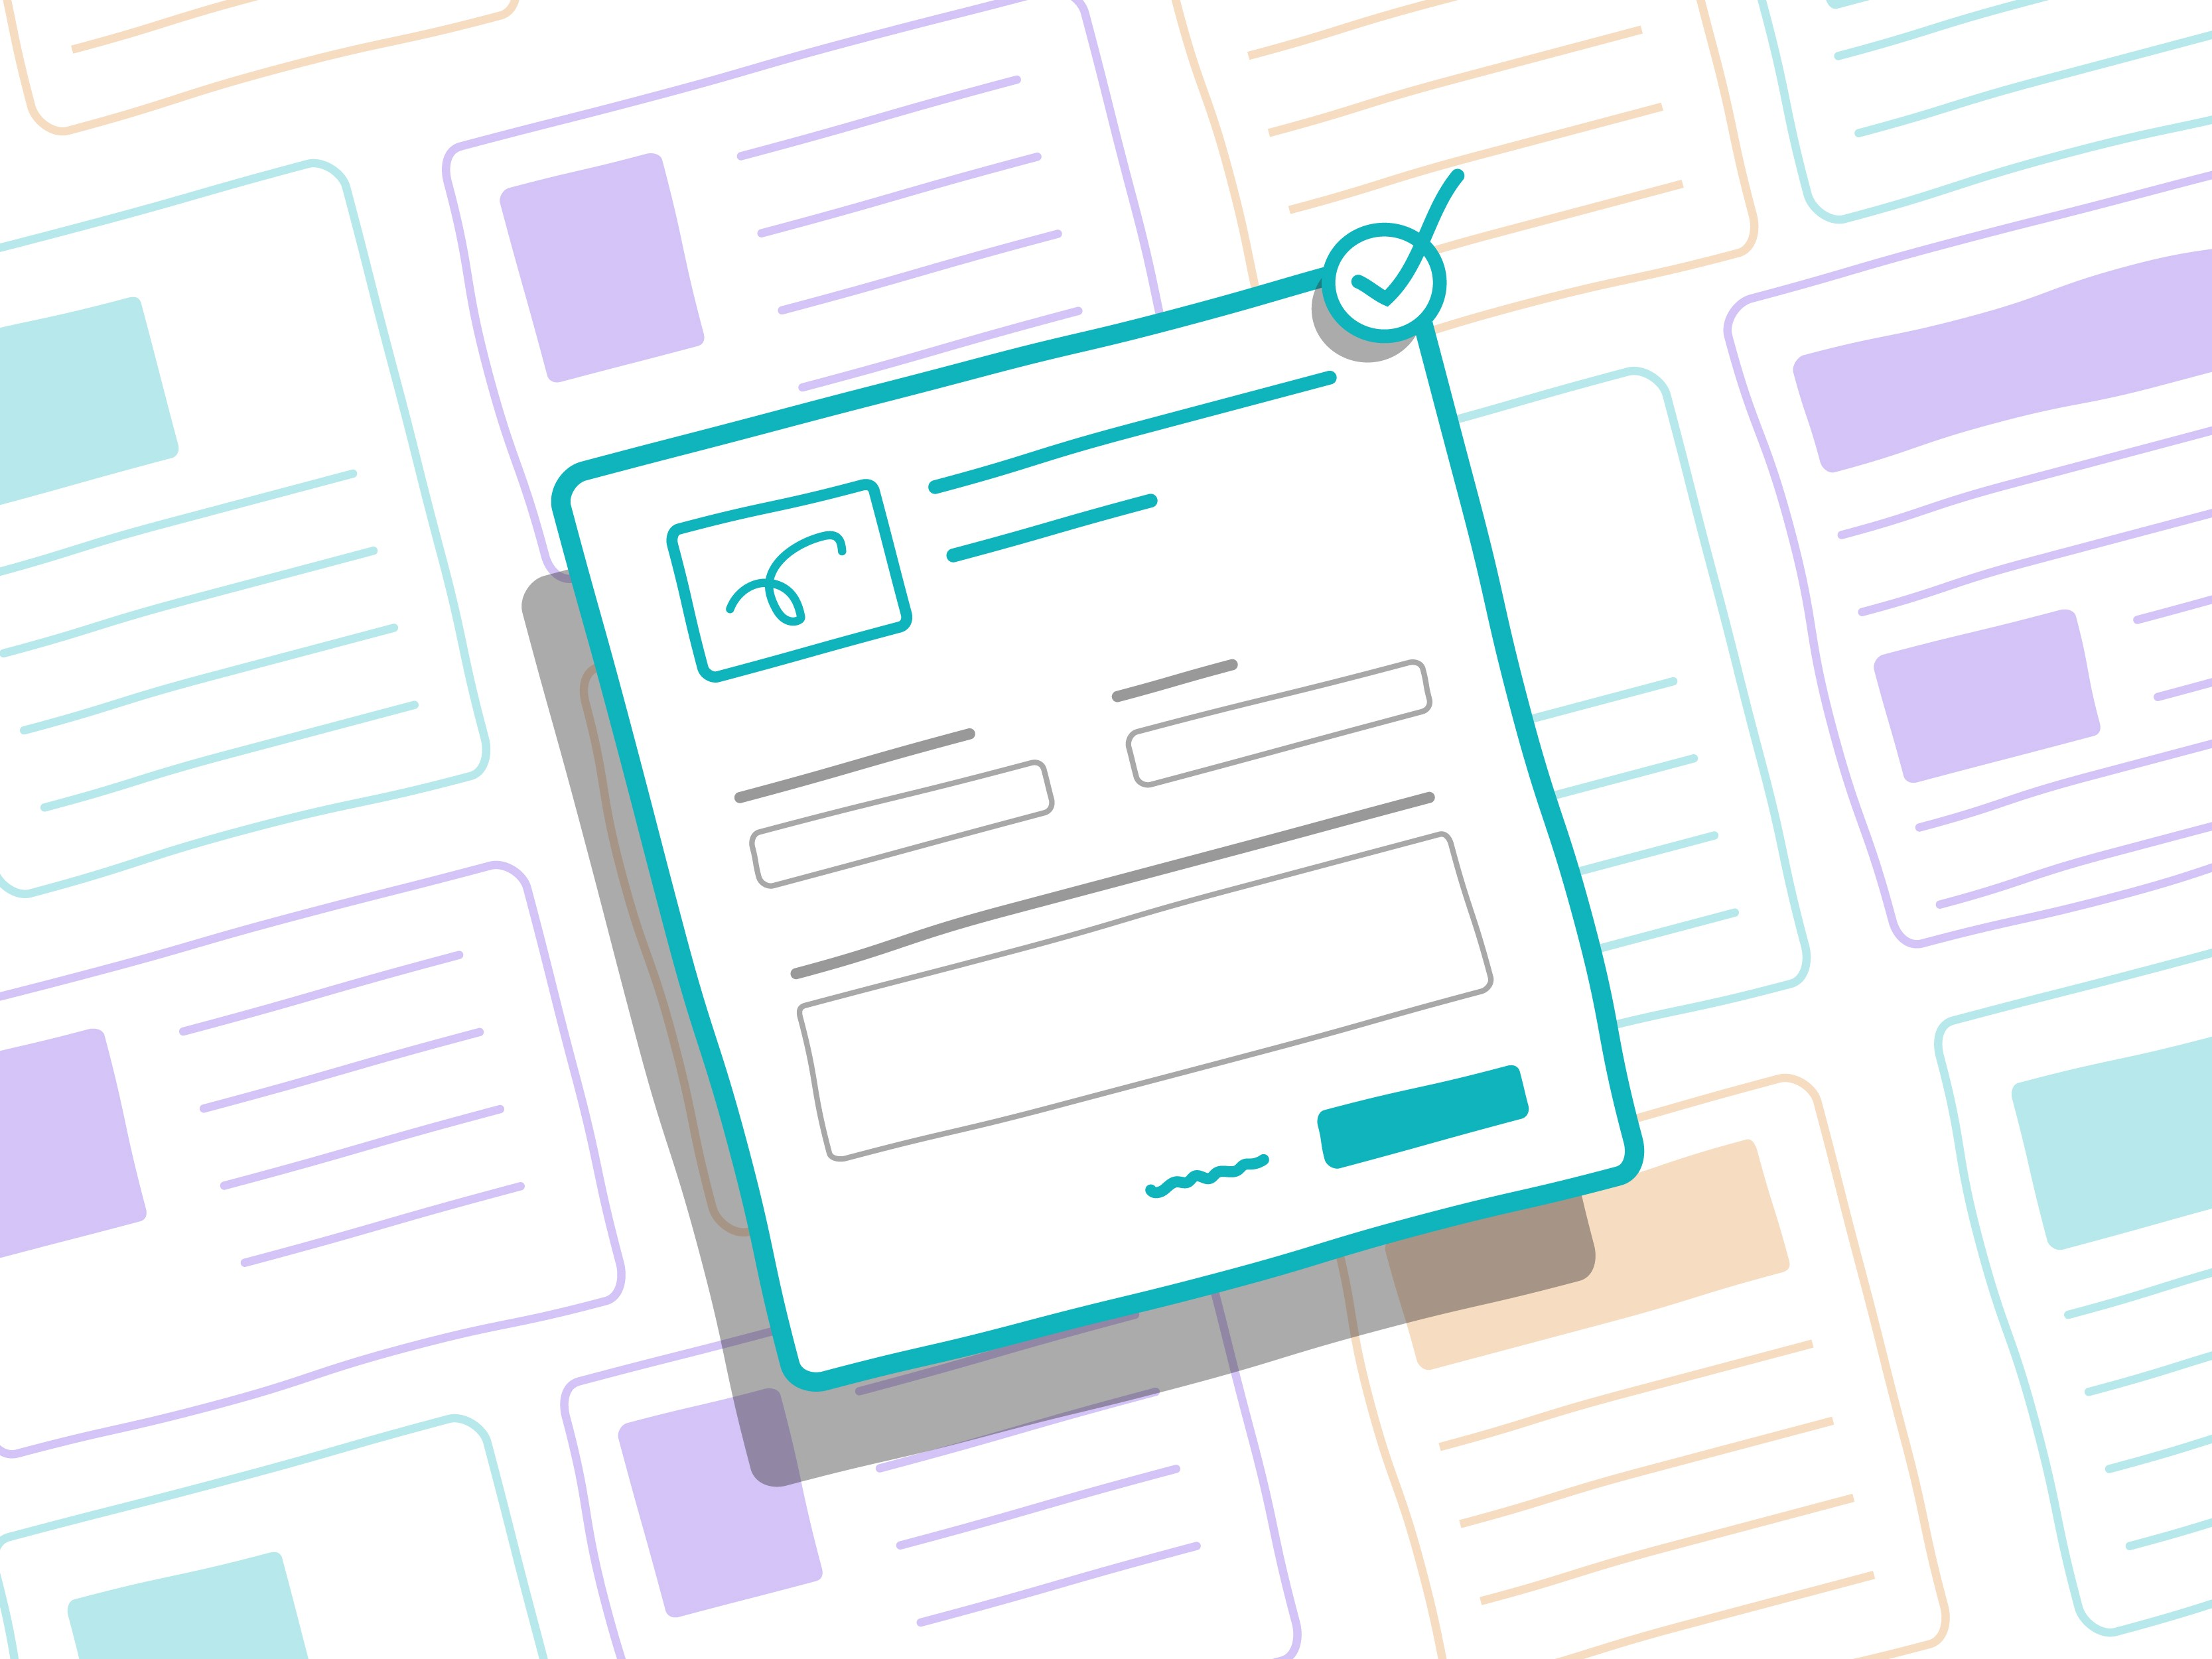 The UX behind designing better forms - UX Collective